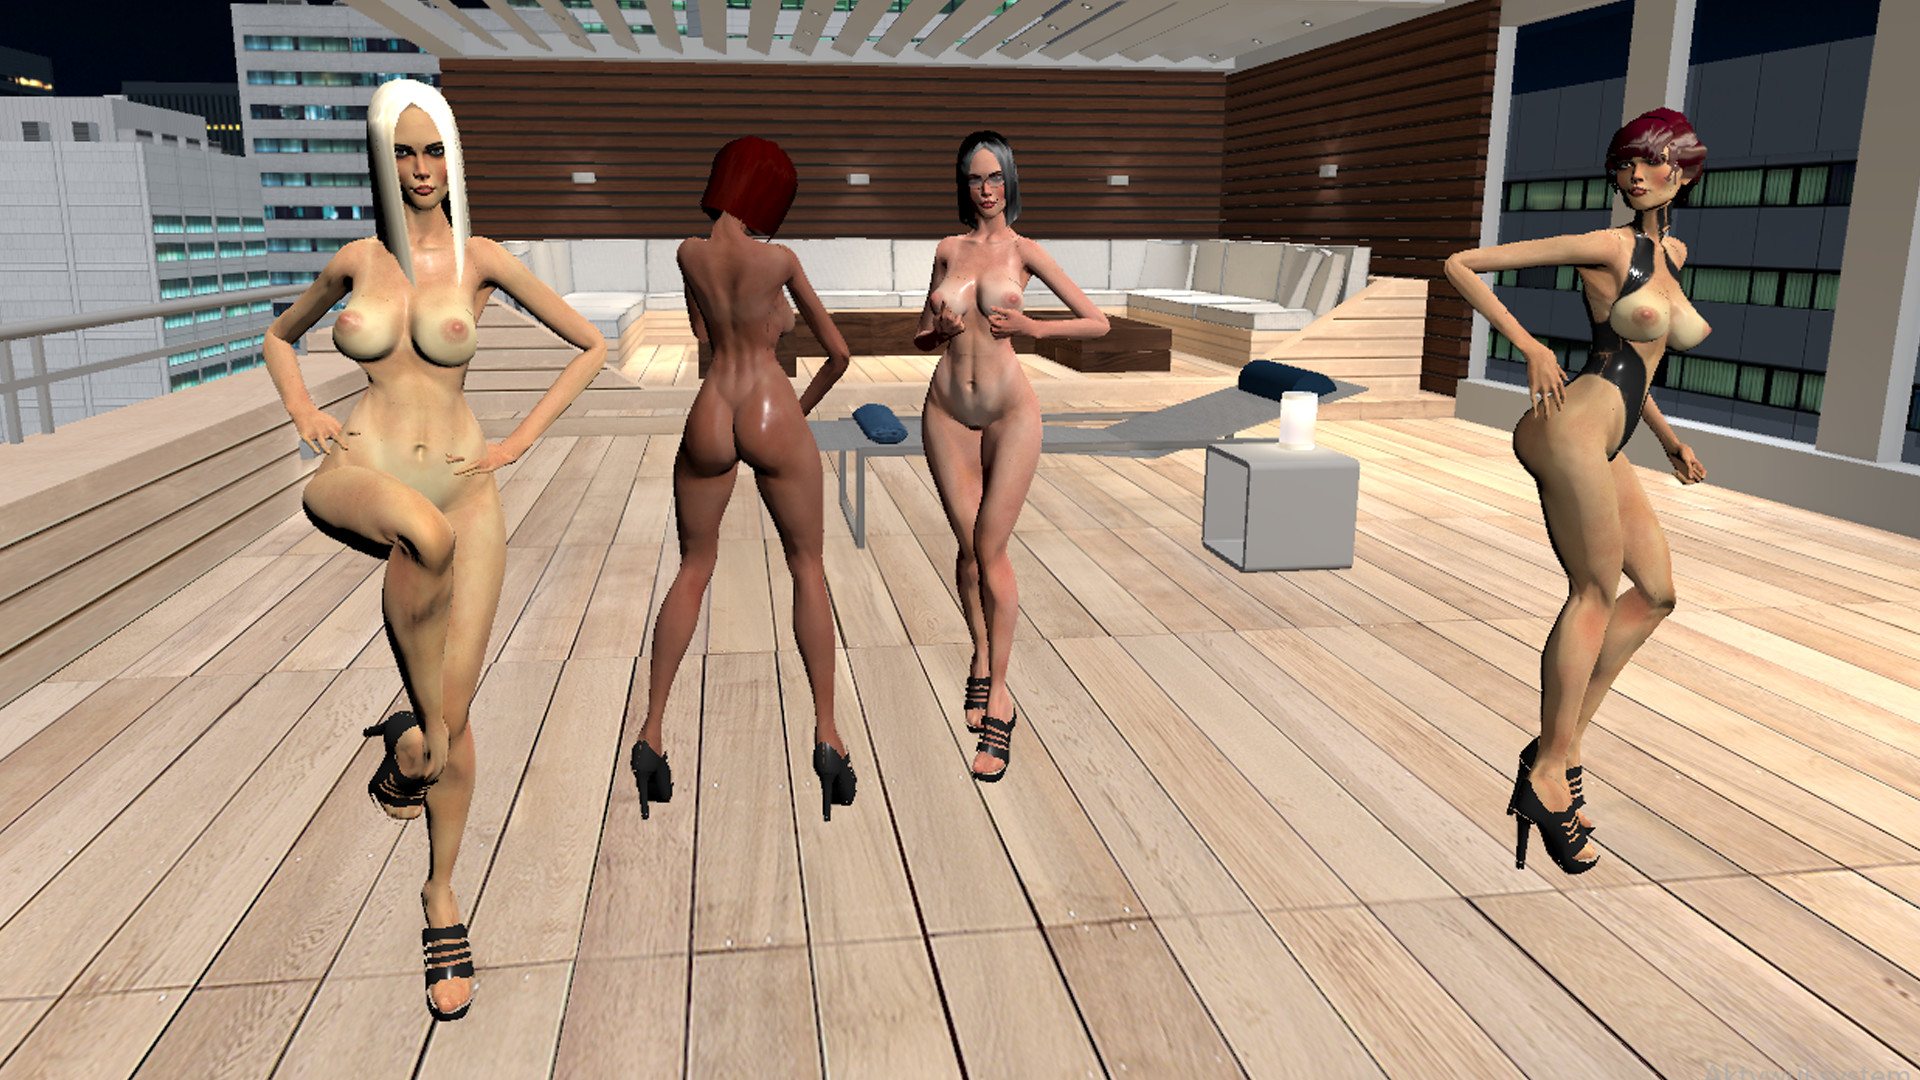 GIRLS VR UNCENSORED!!! Free Download